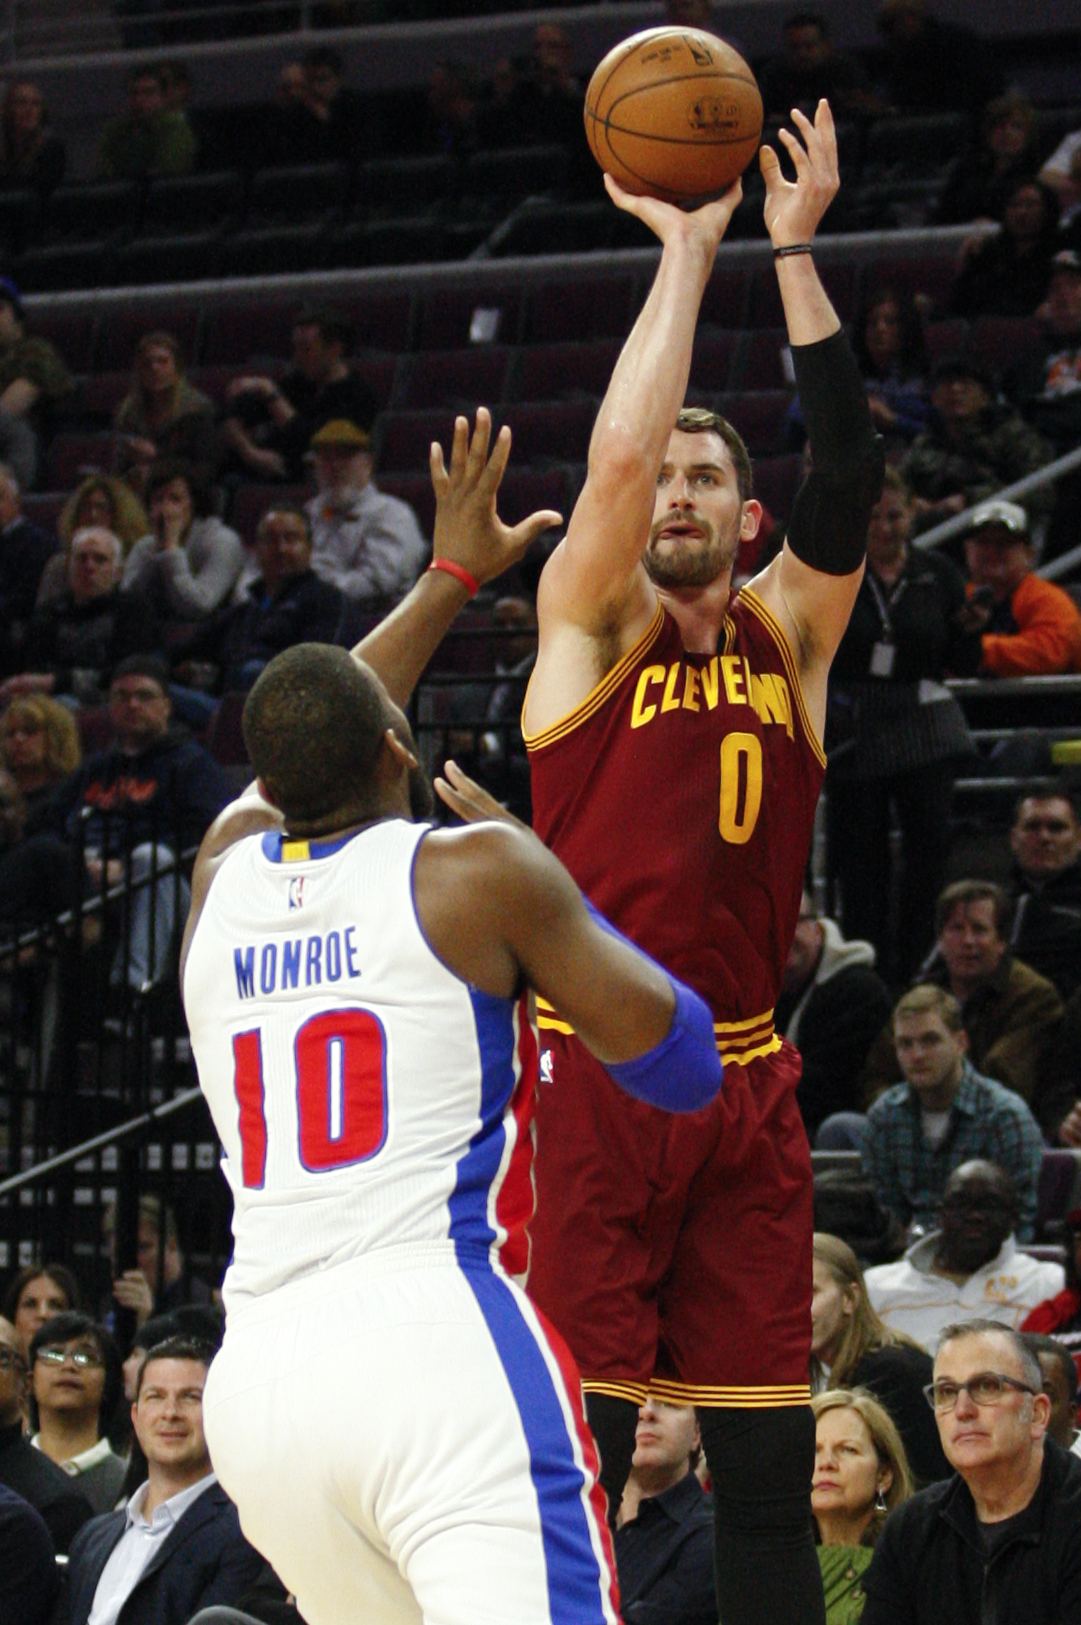 Cavaliers vs. Warriors: Five things to watch